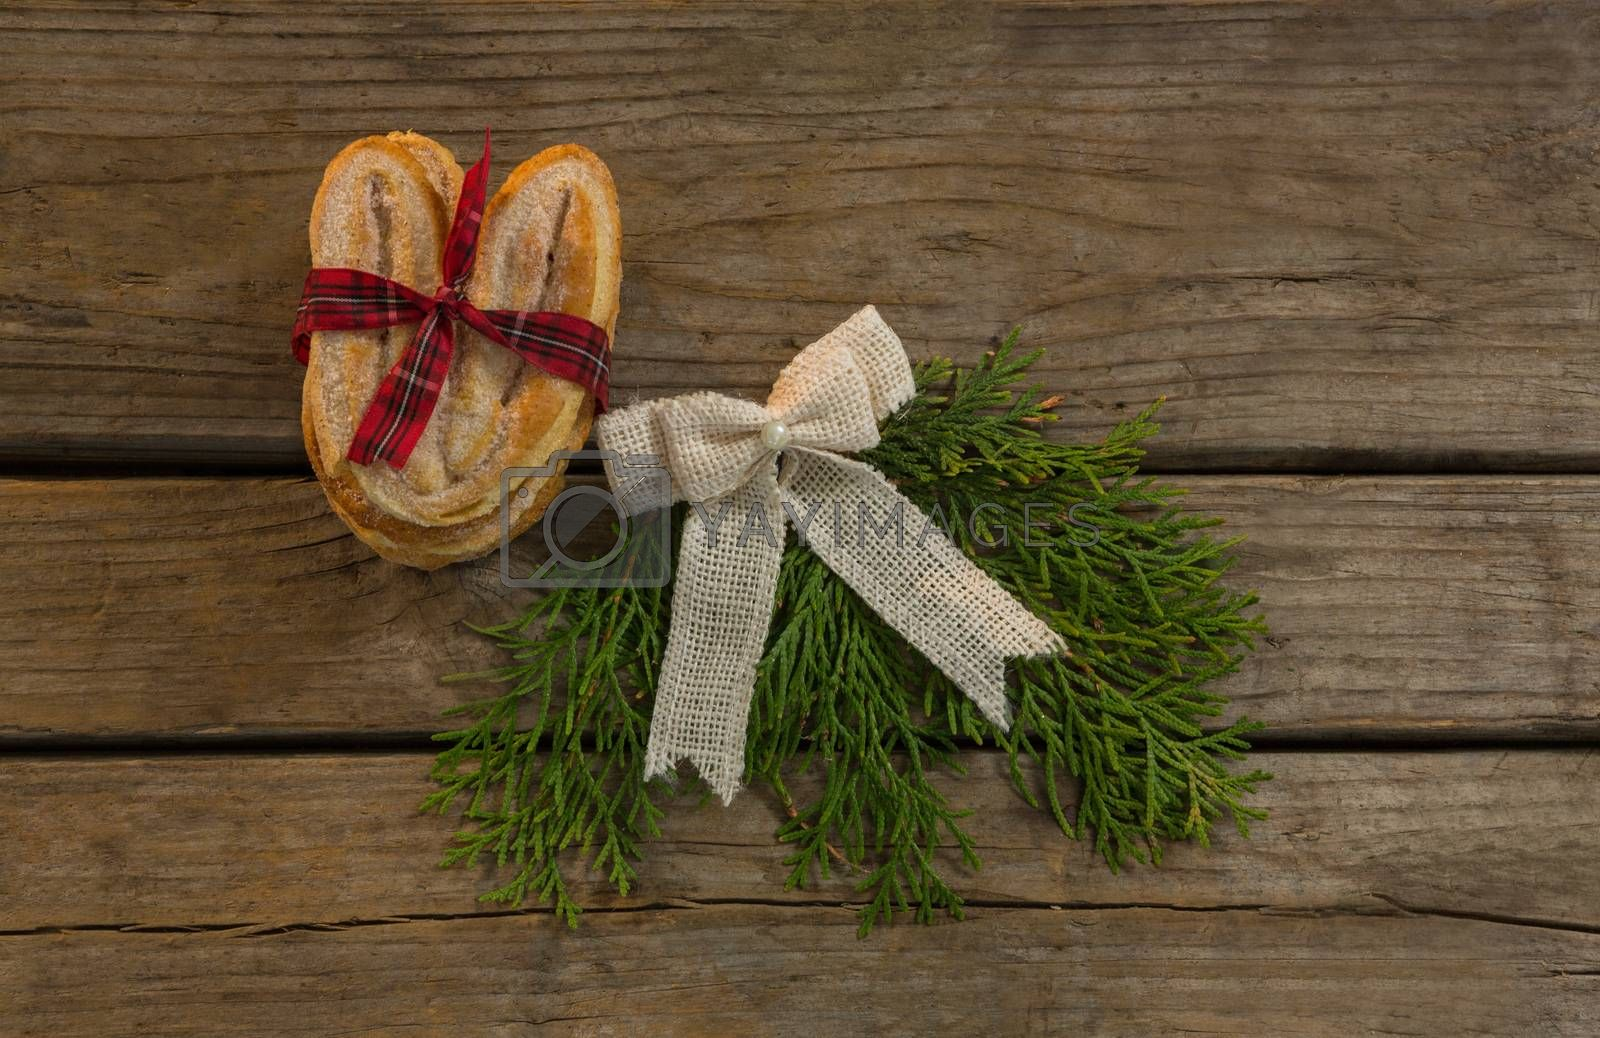 Overhead view sweet food with tied bow and pine needles on table by Wavebreakmedia